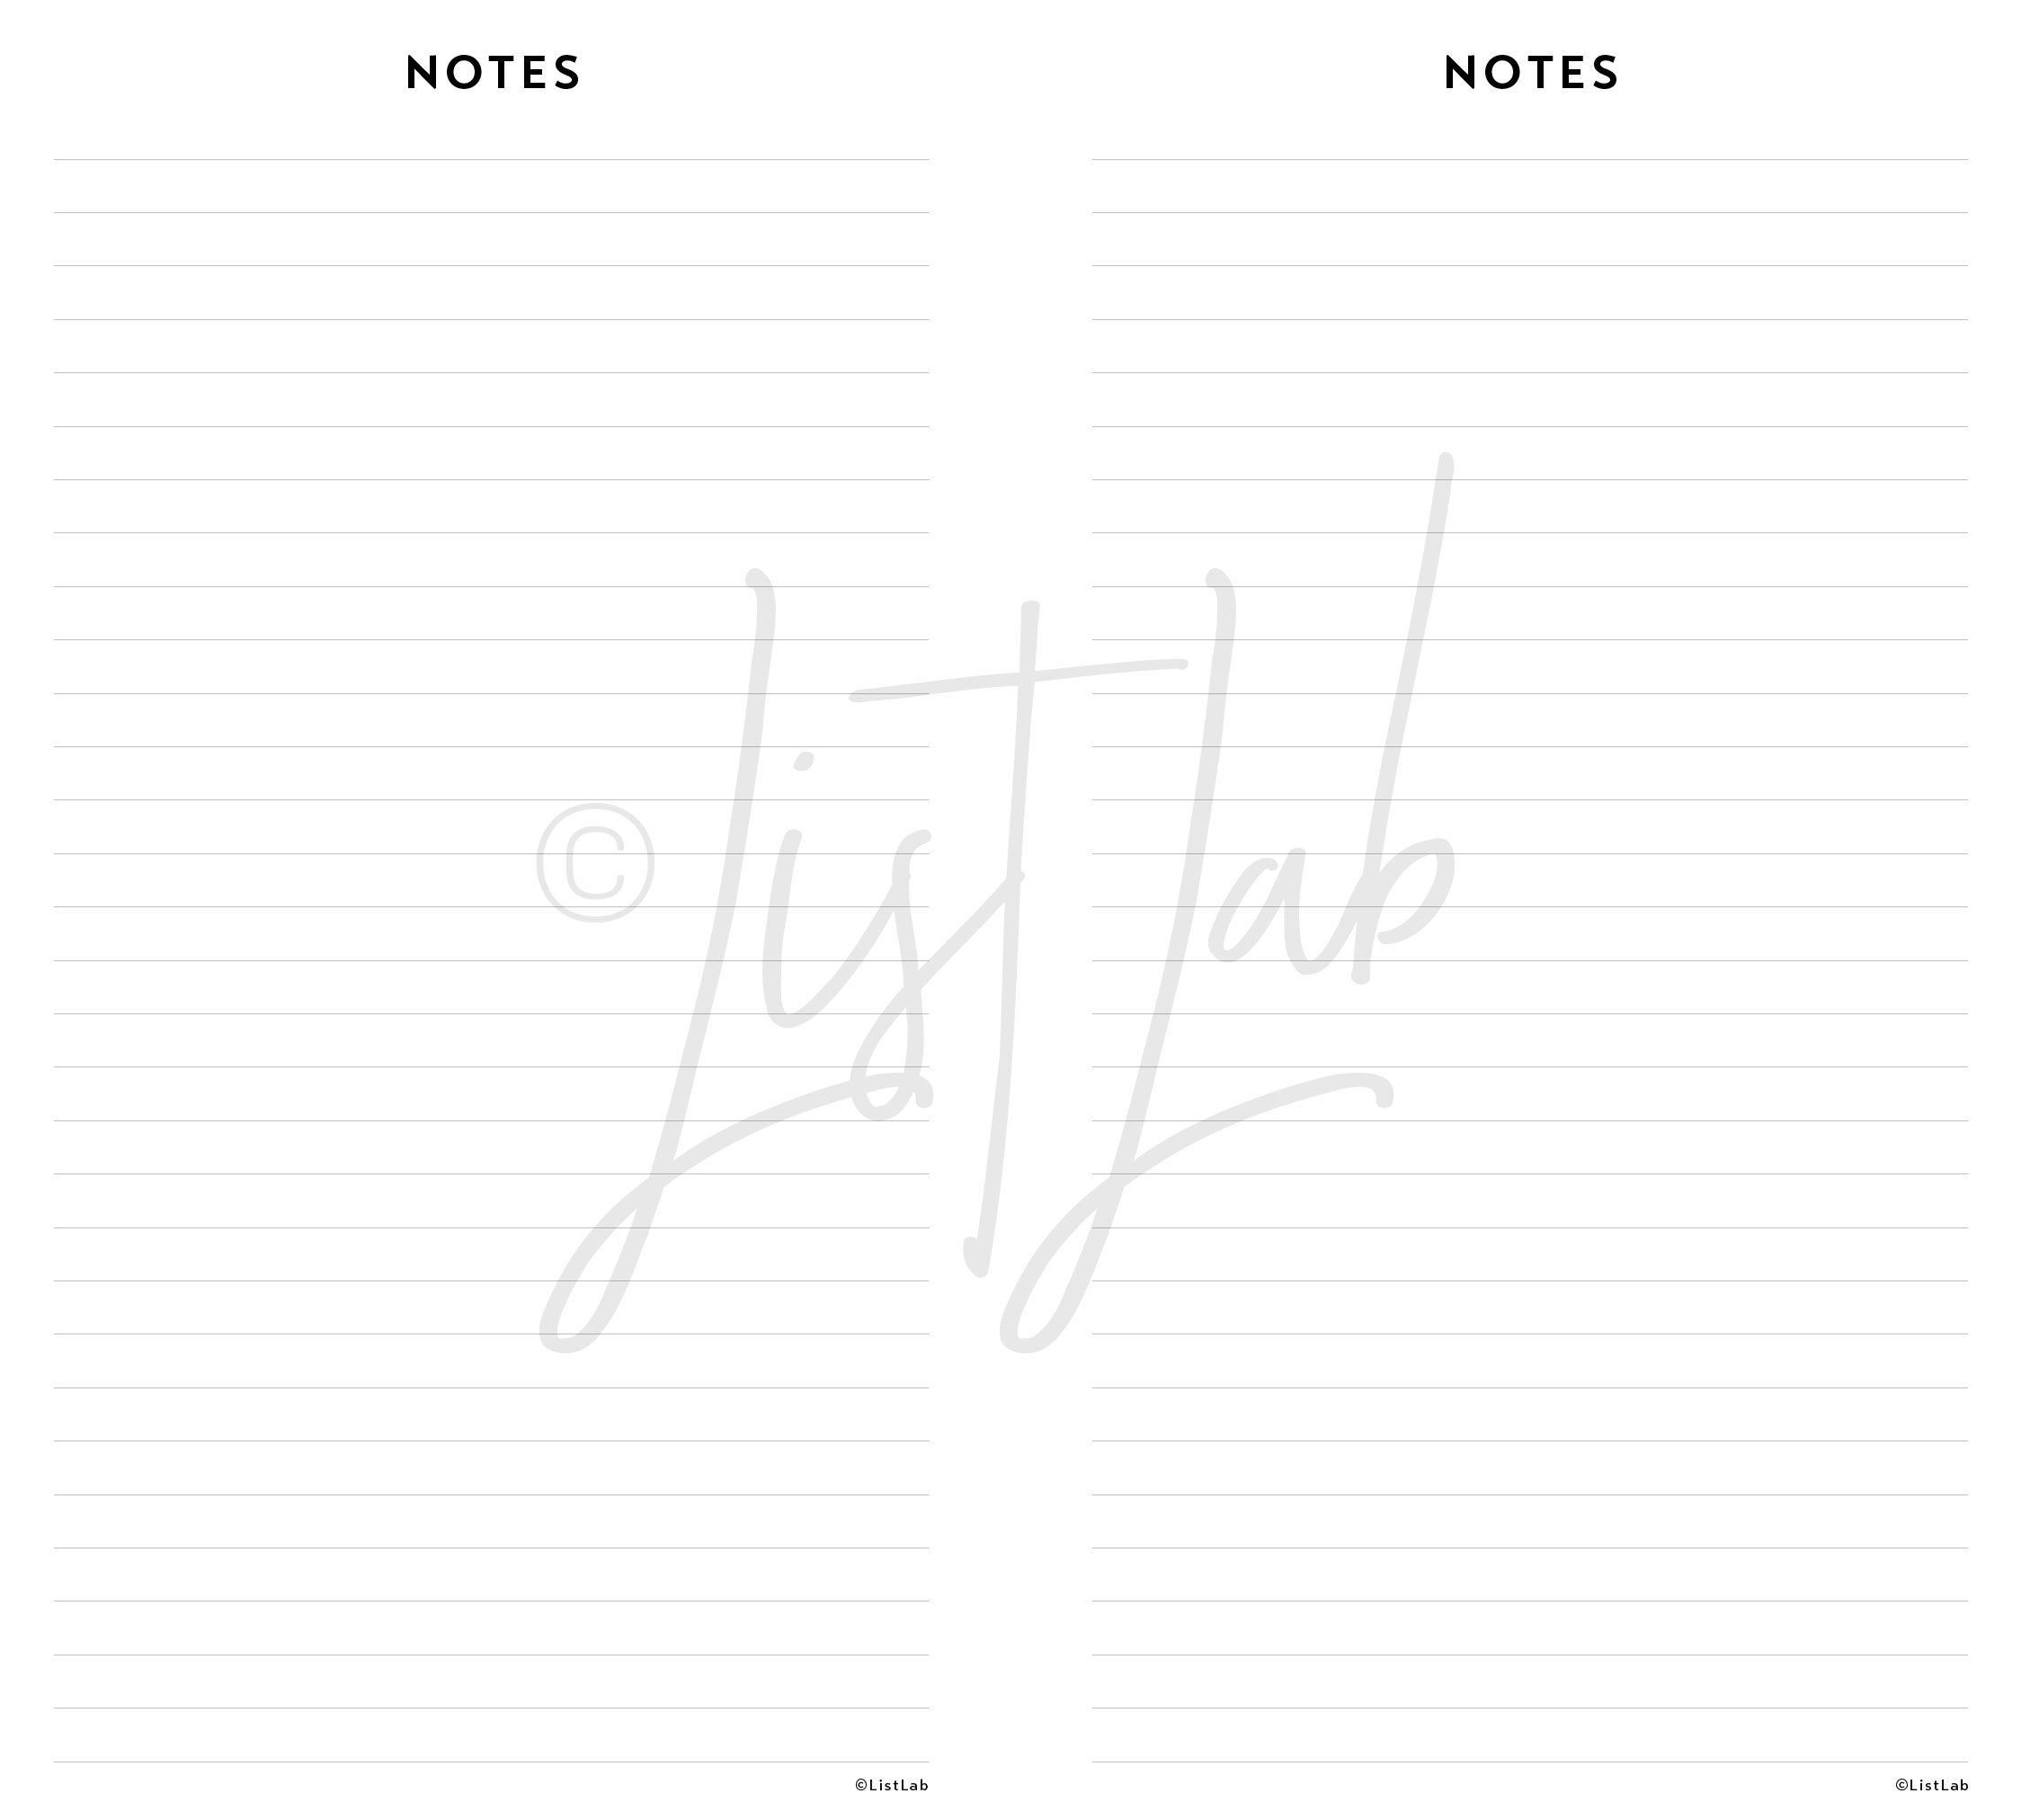 NOTES PAGE